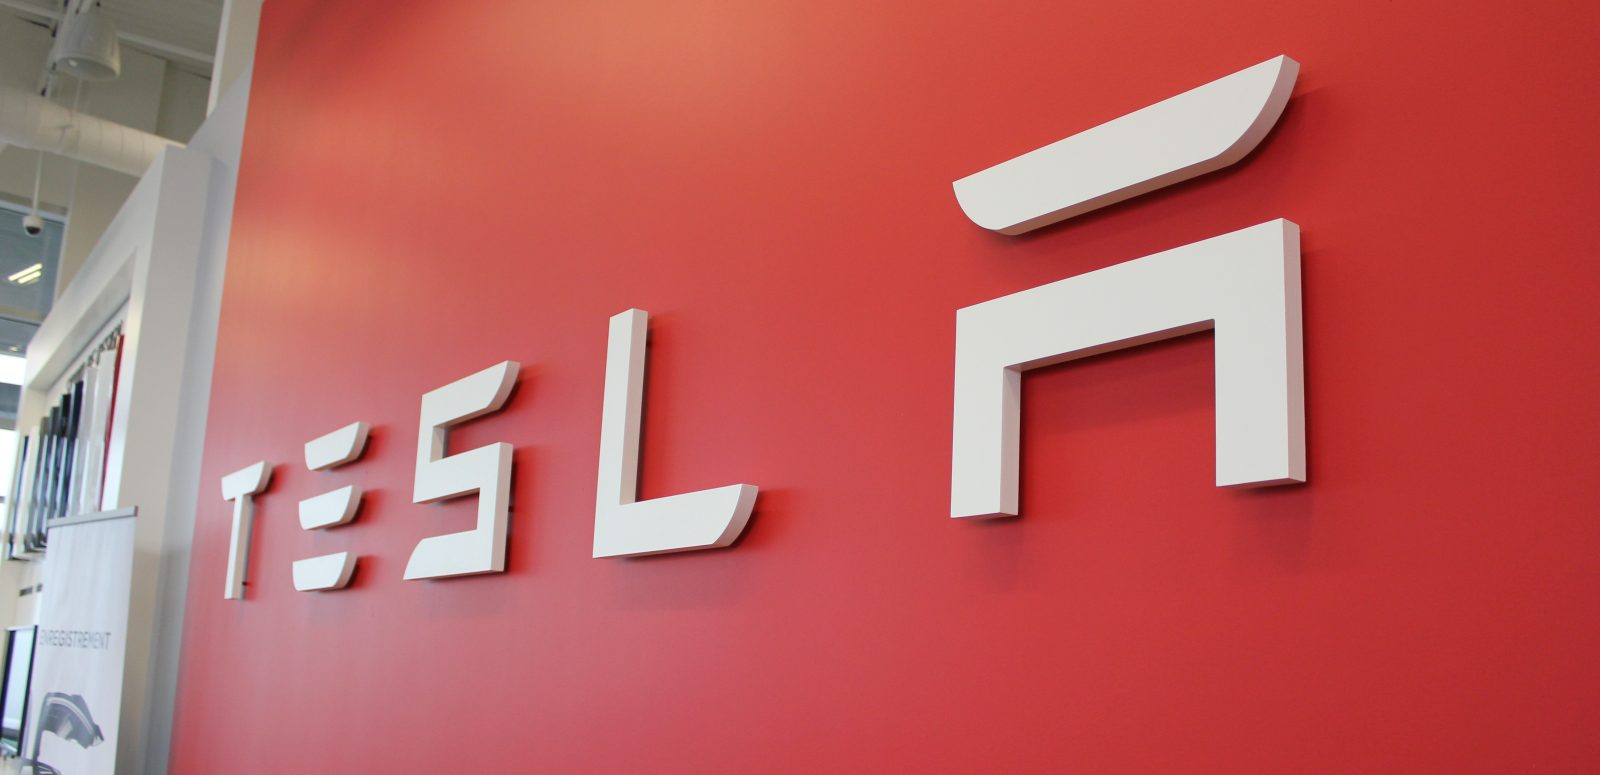 Tesla (TSLA) gets new $800 price target based on its ability to execute